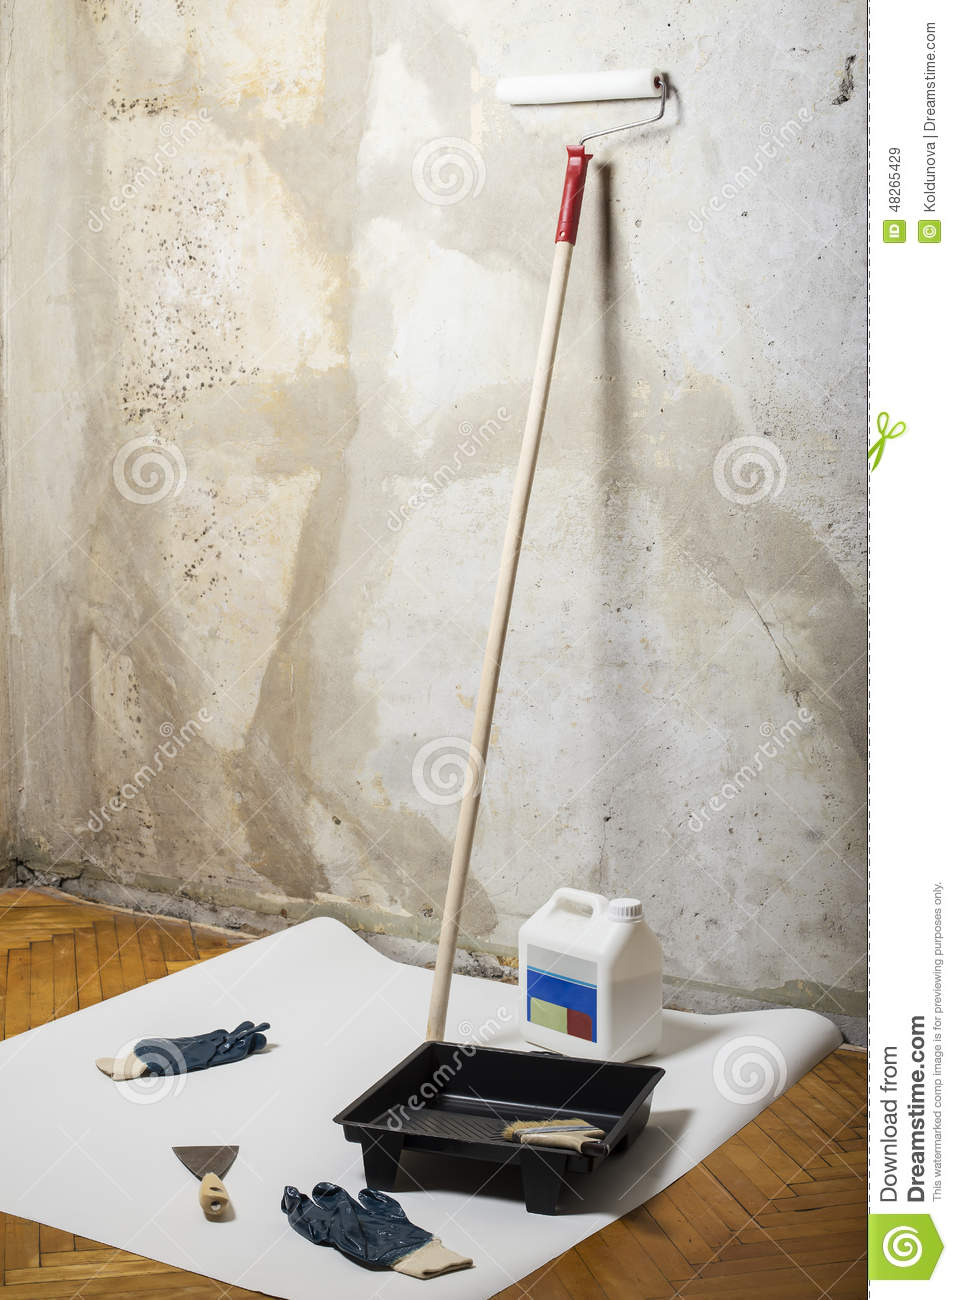 Tools for painting stock photo image 48265429 for Wall painting utensils